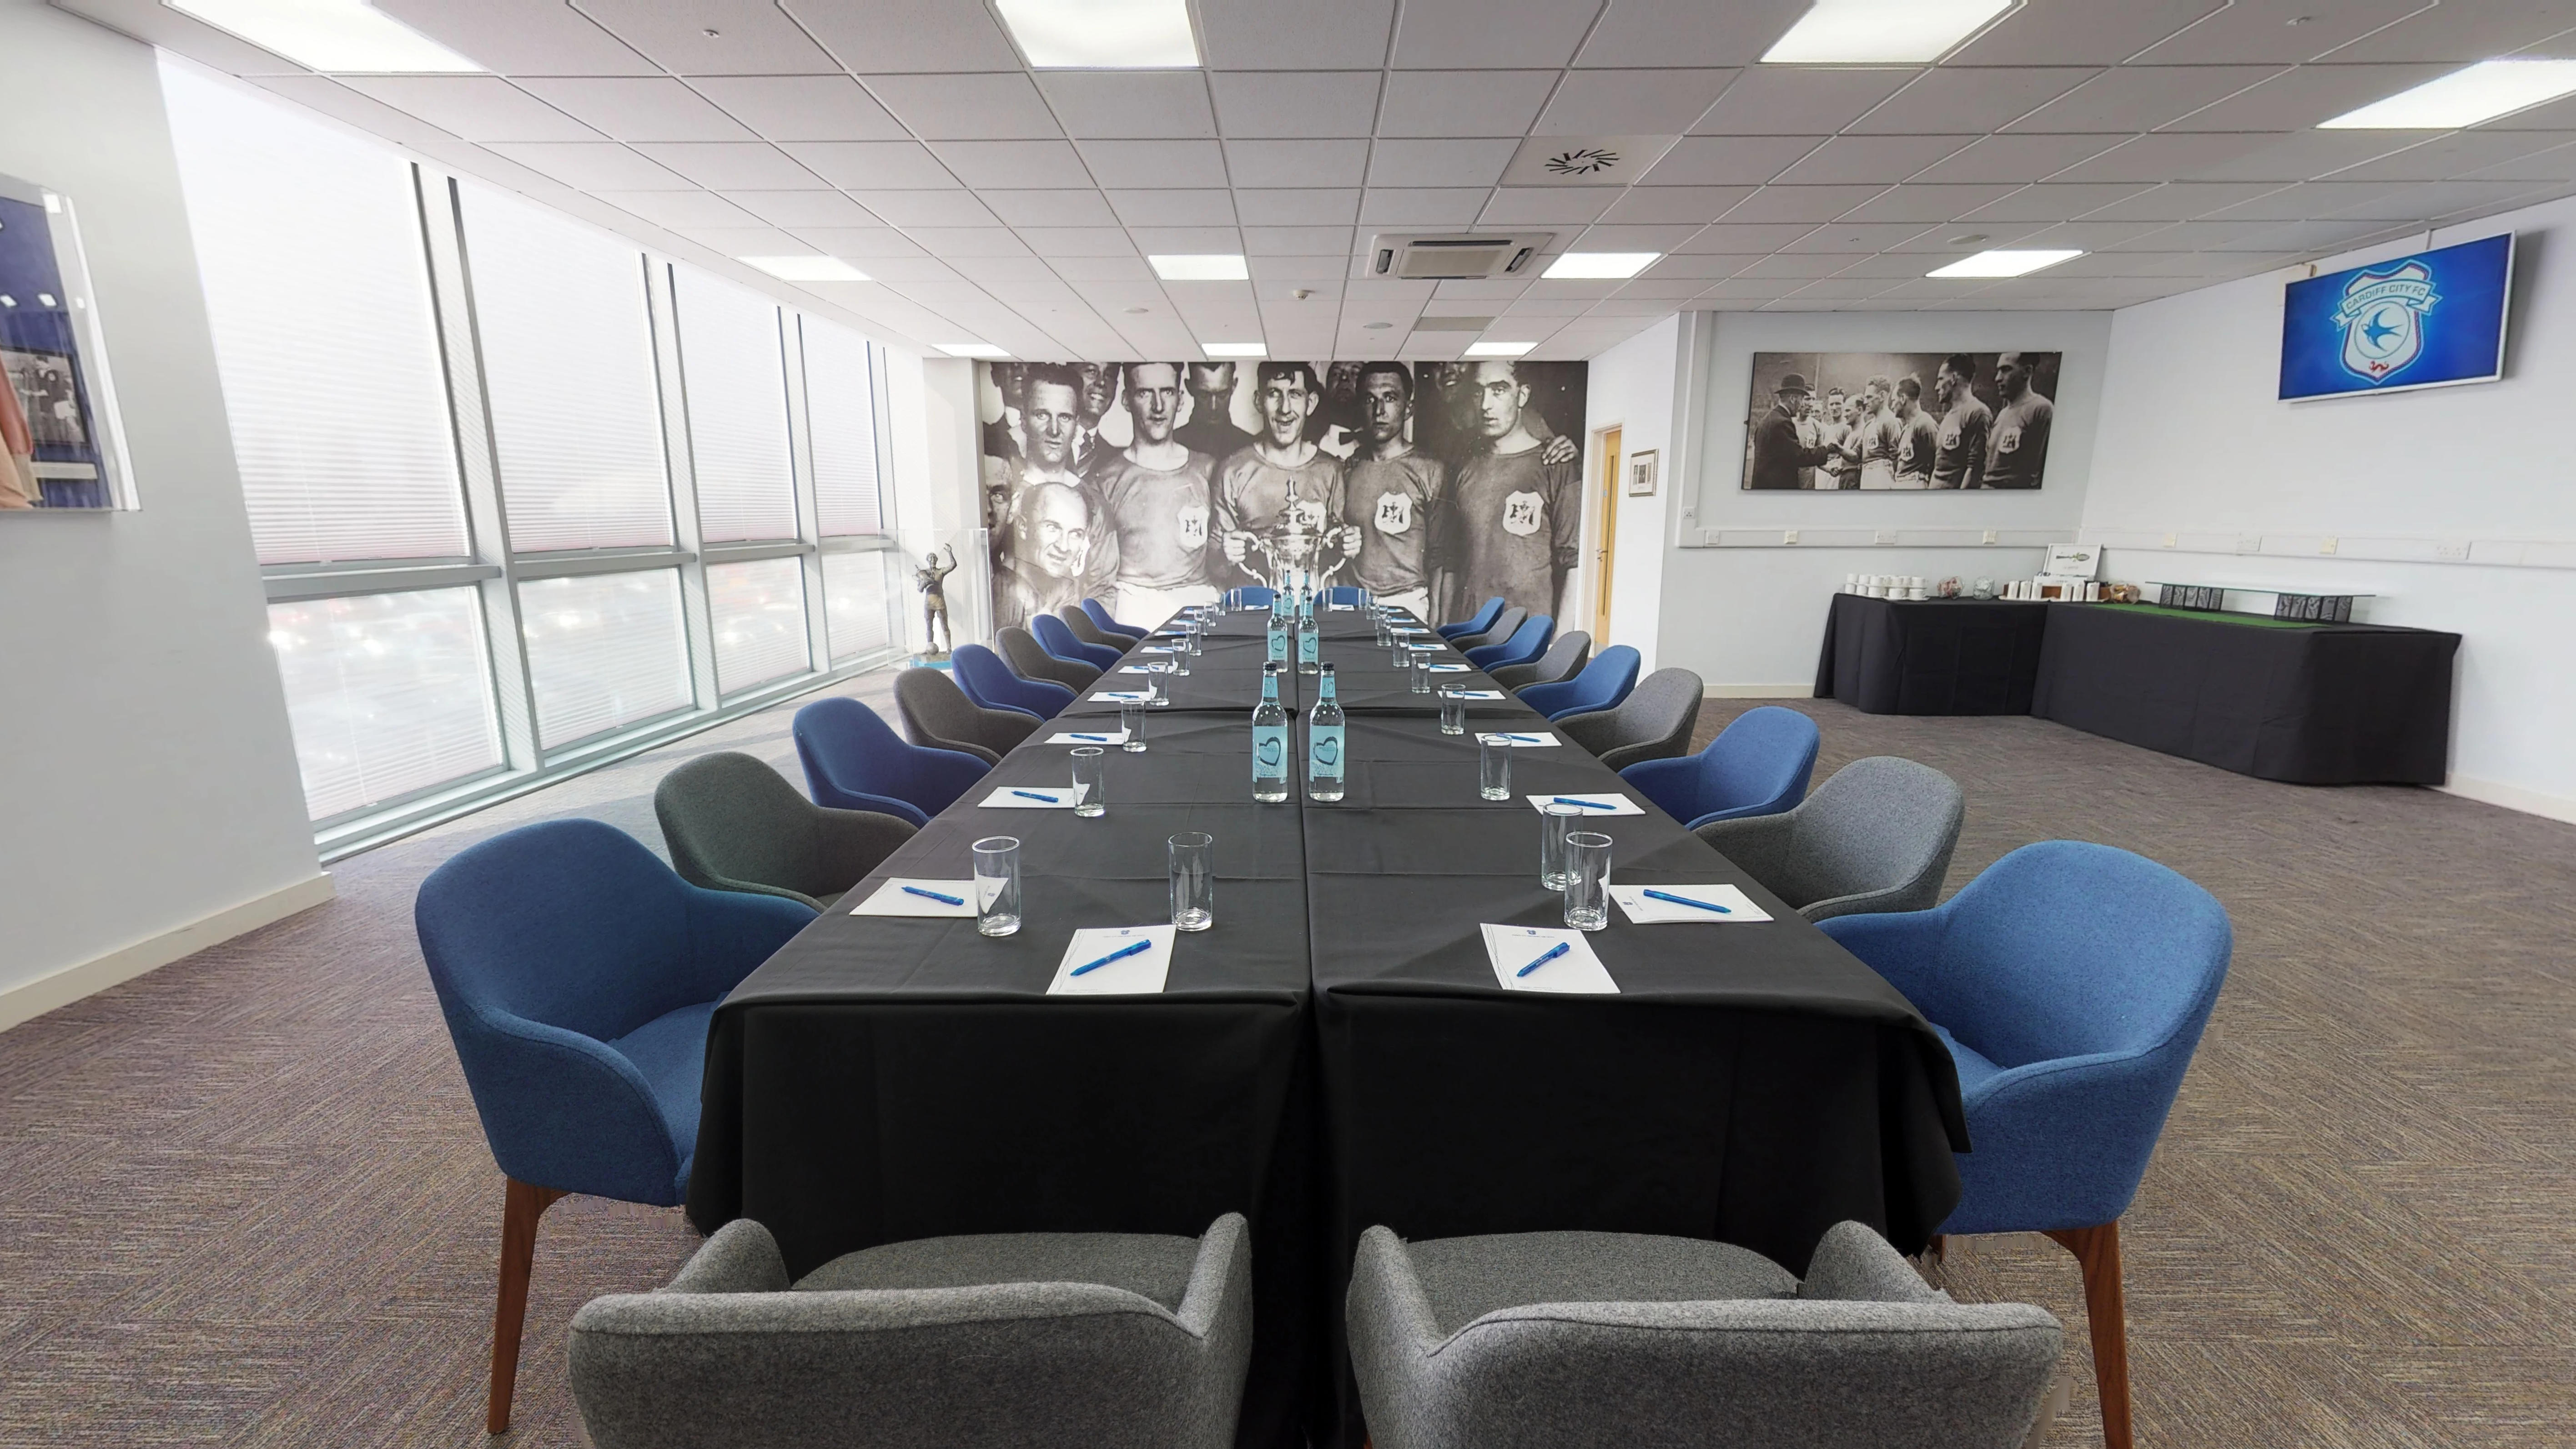 Cardiff City Meetings Events Fred Keenor Suite Boardroom